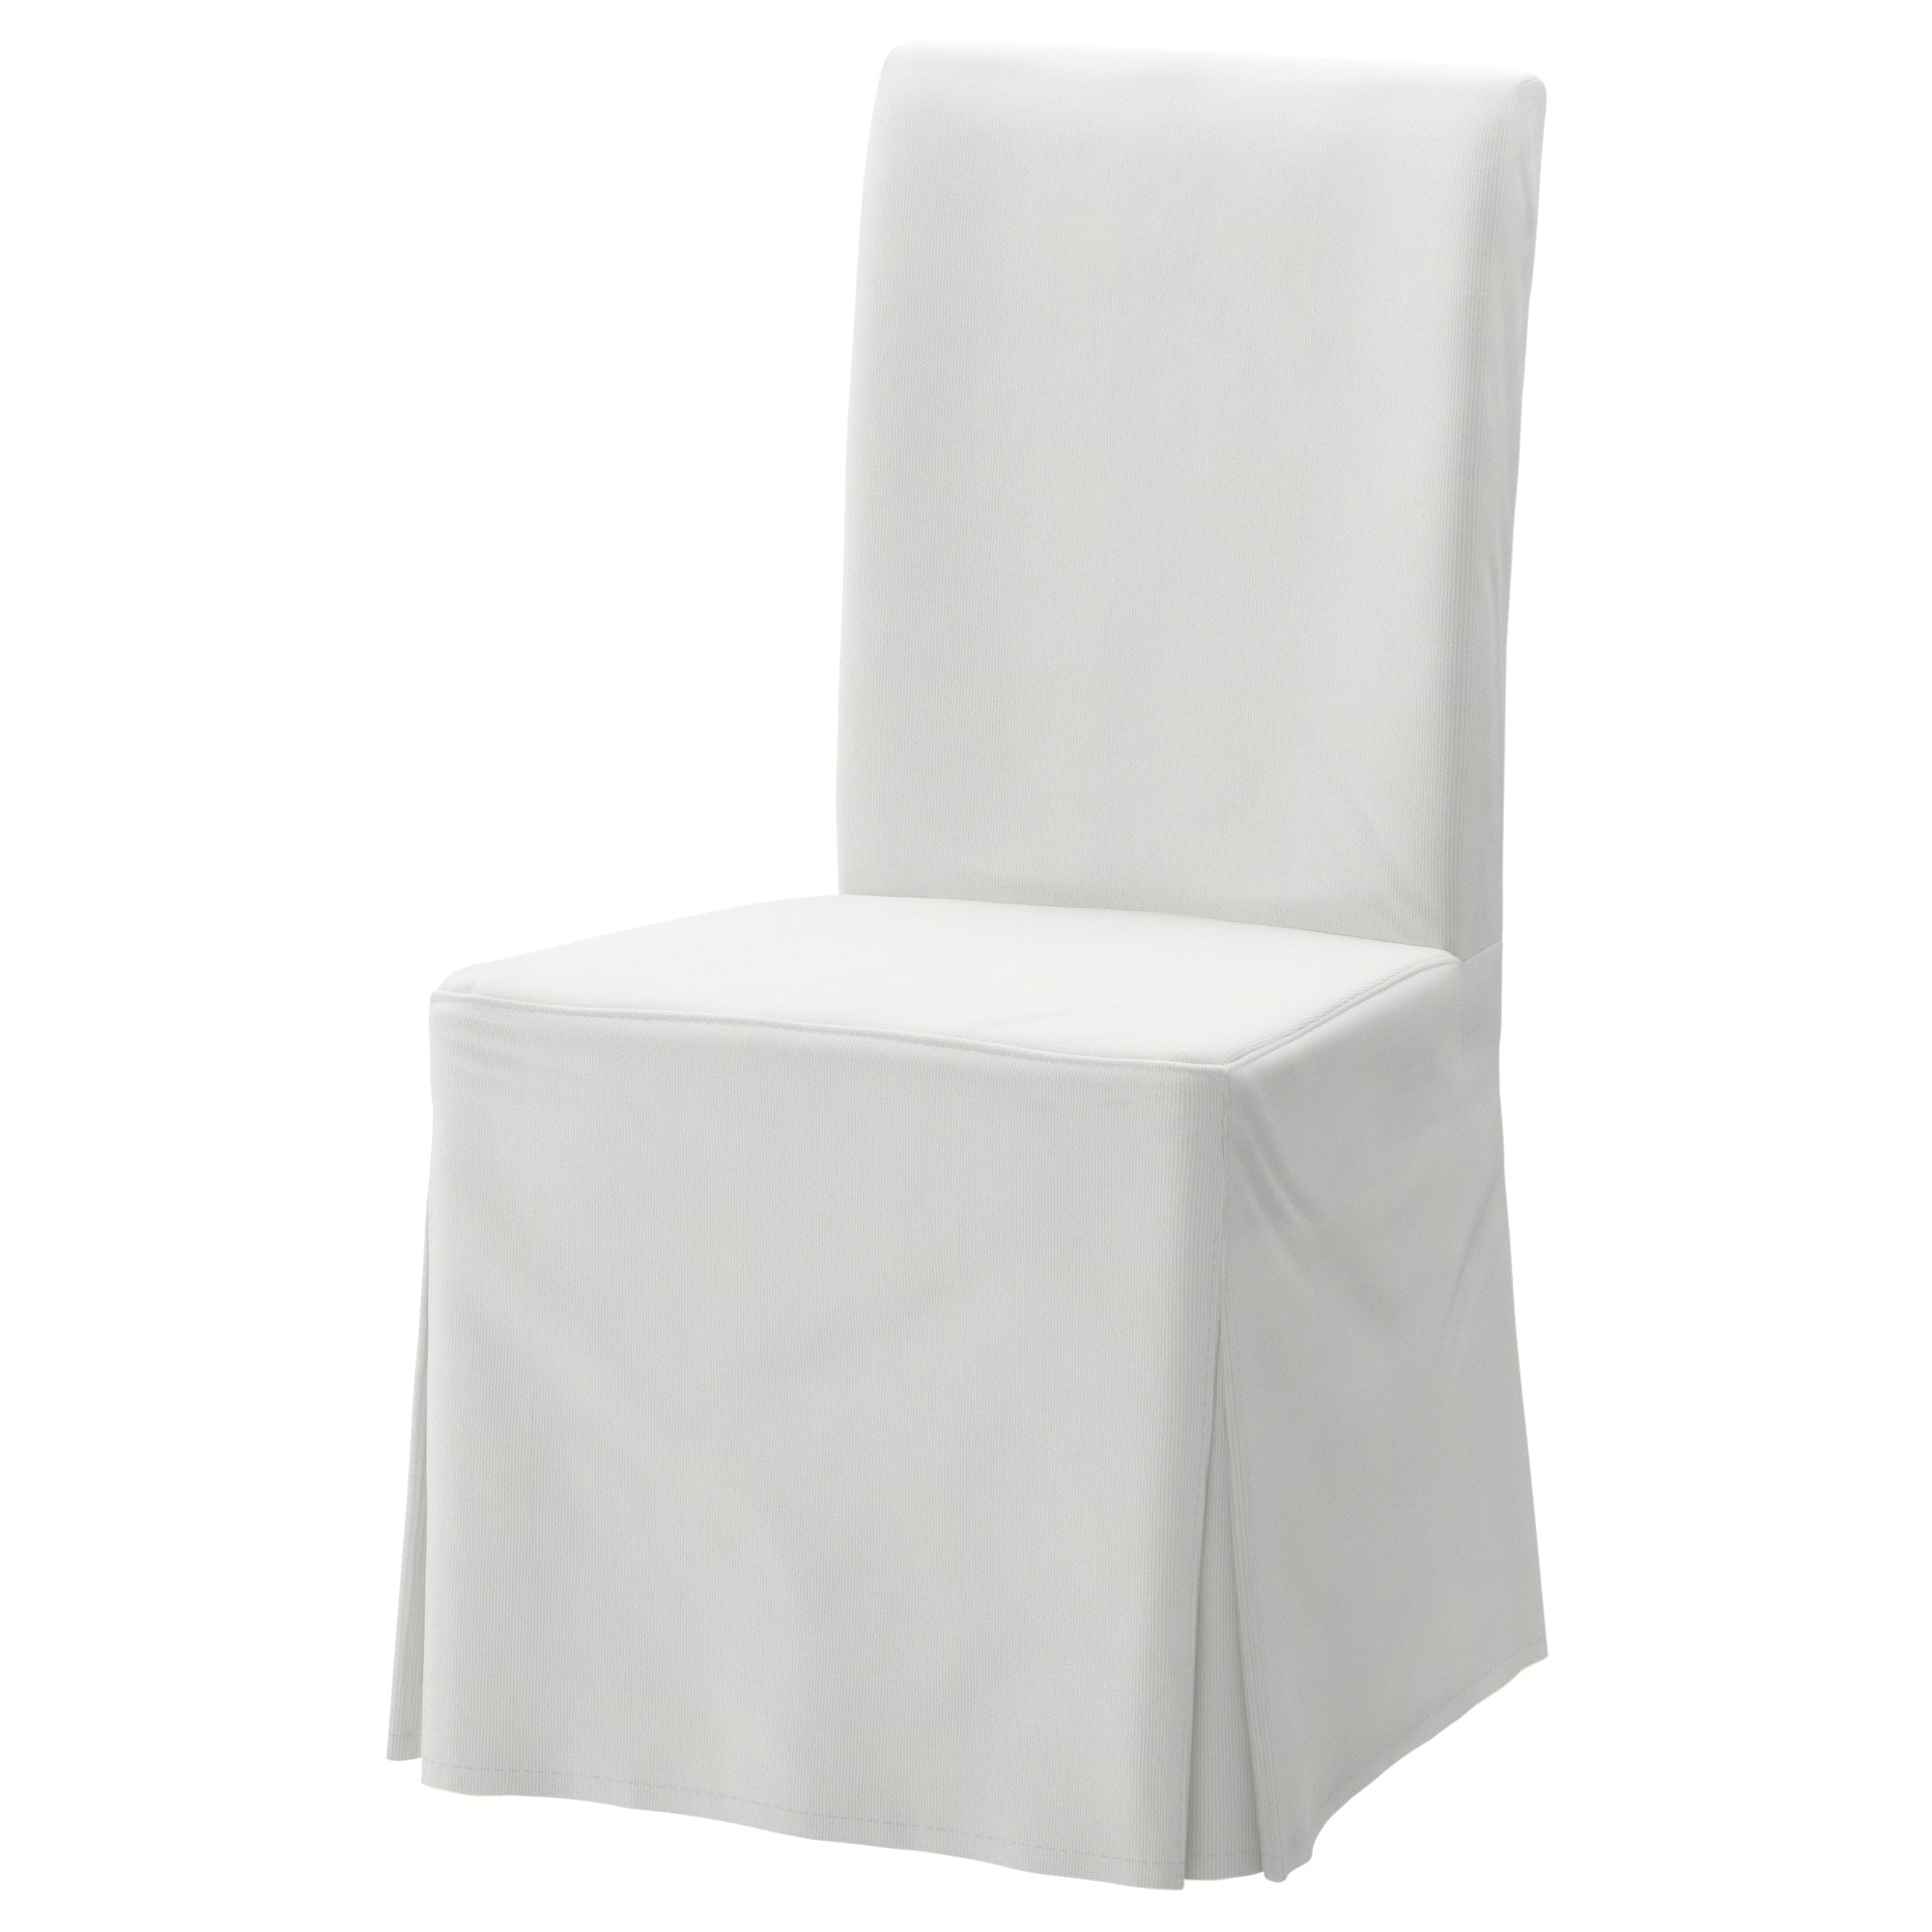 HENRIKSDAL Chair cover longIKEA